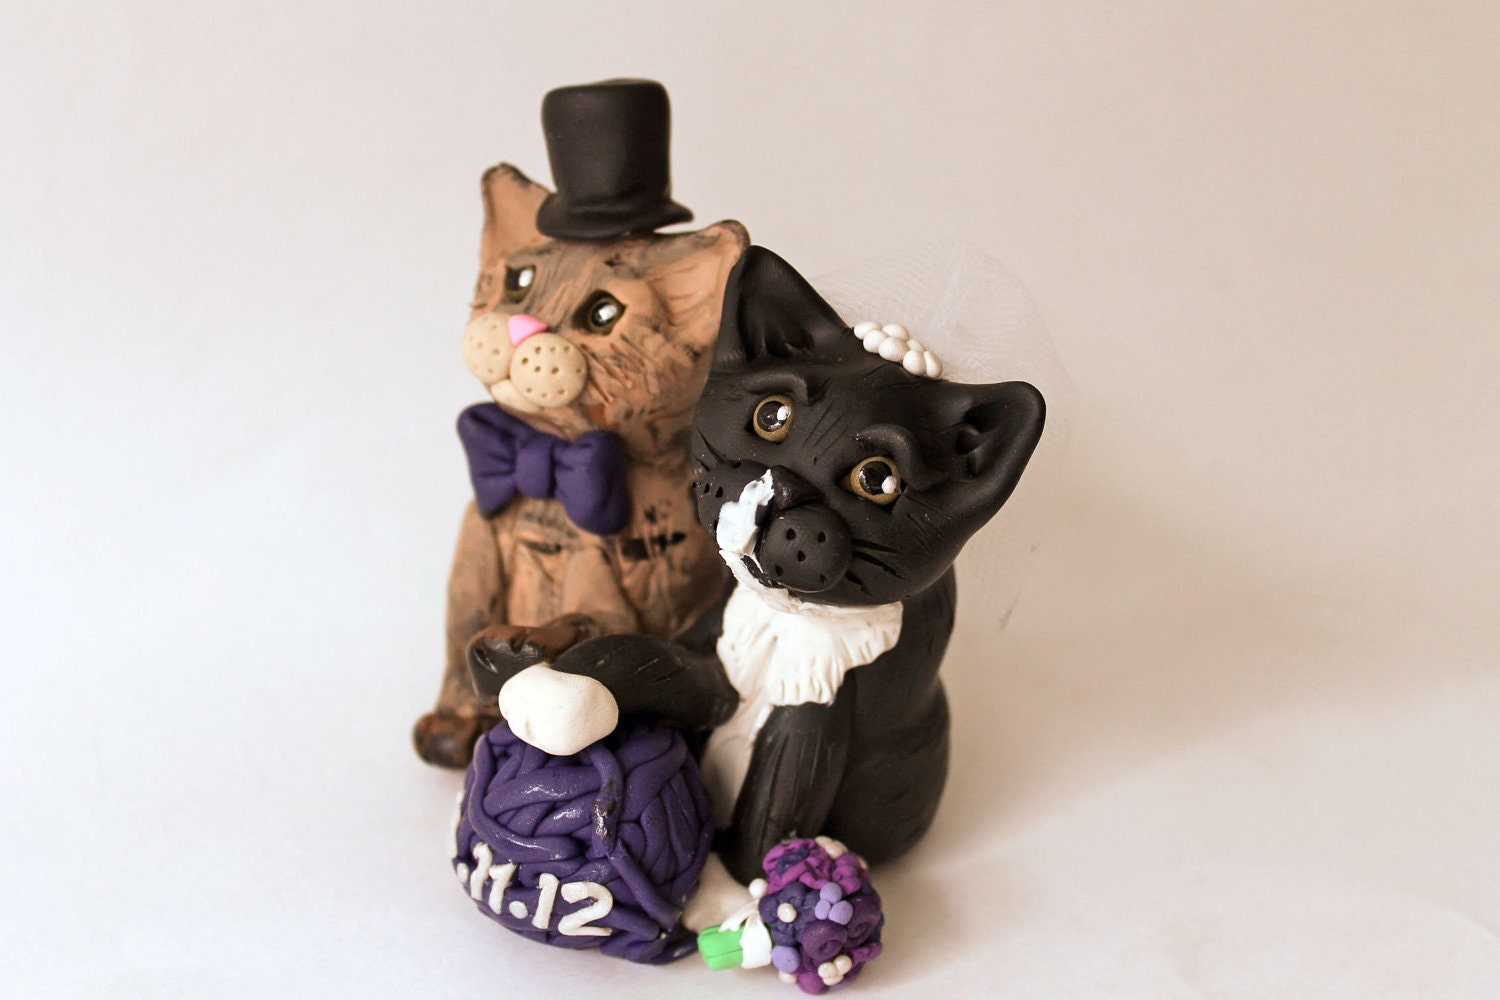 Custom Wedding Cake Topper with Bride and Groom Cats - Personalized Pet Portrait